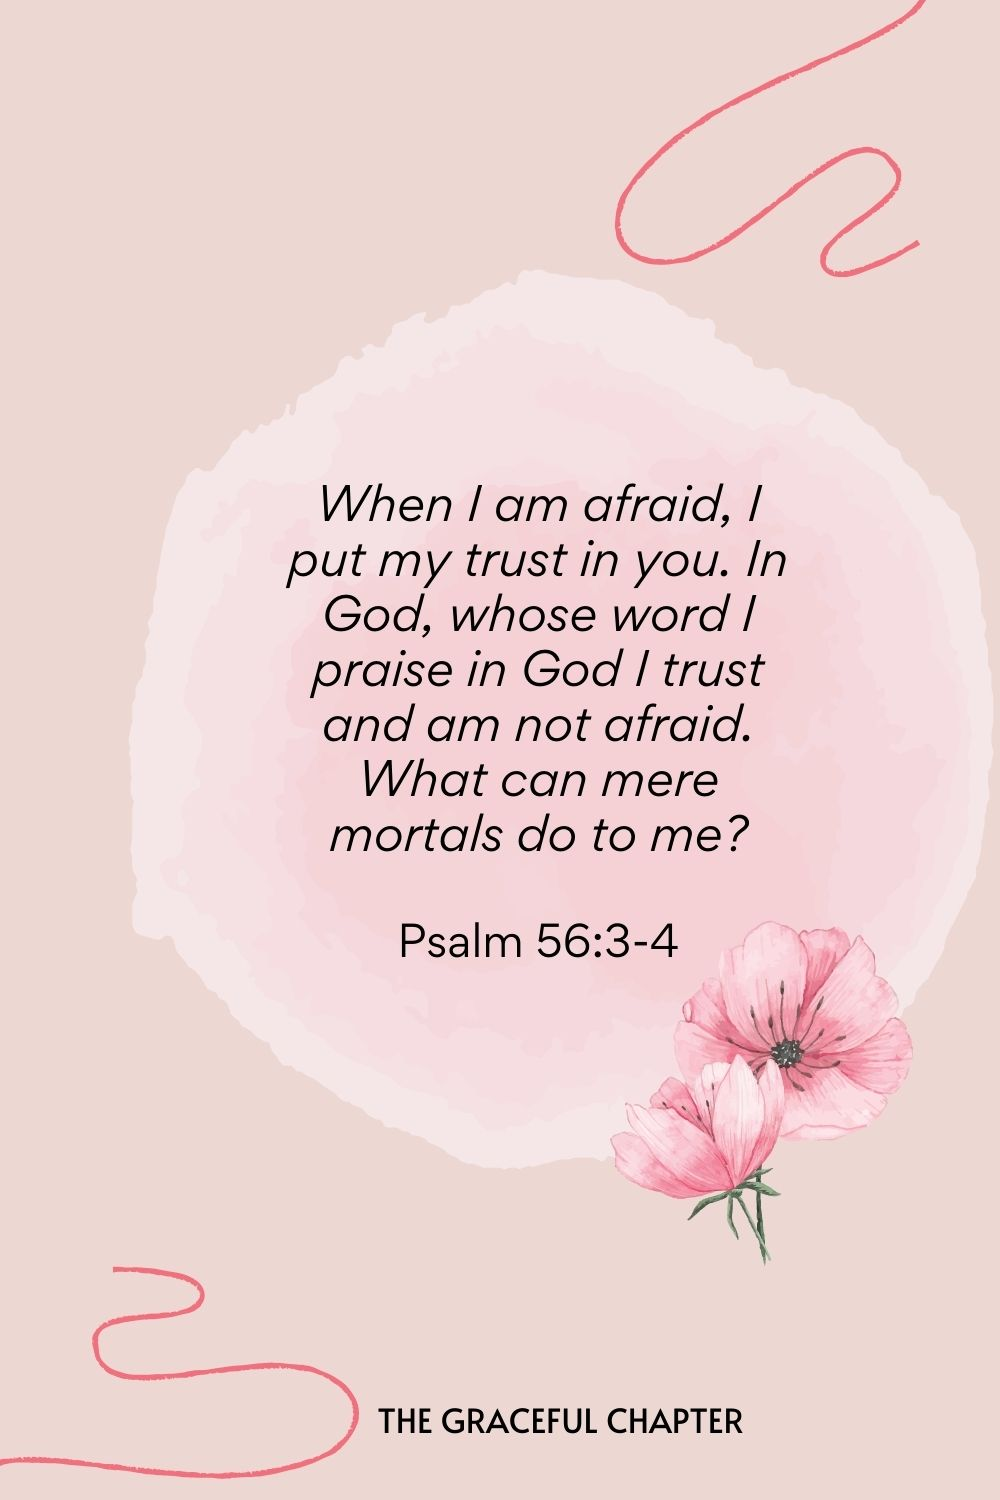 When I am afraid, I put my trust in you. In God, whose word I praise in God I trust and am not afraid. What can mere mortals do to me?  Psalm 56:3-4